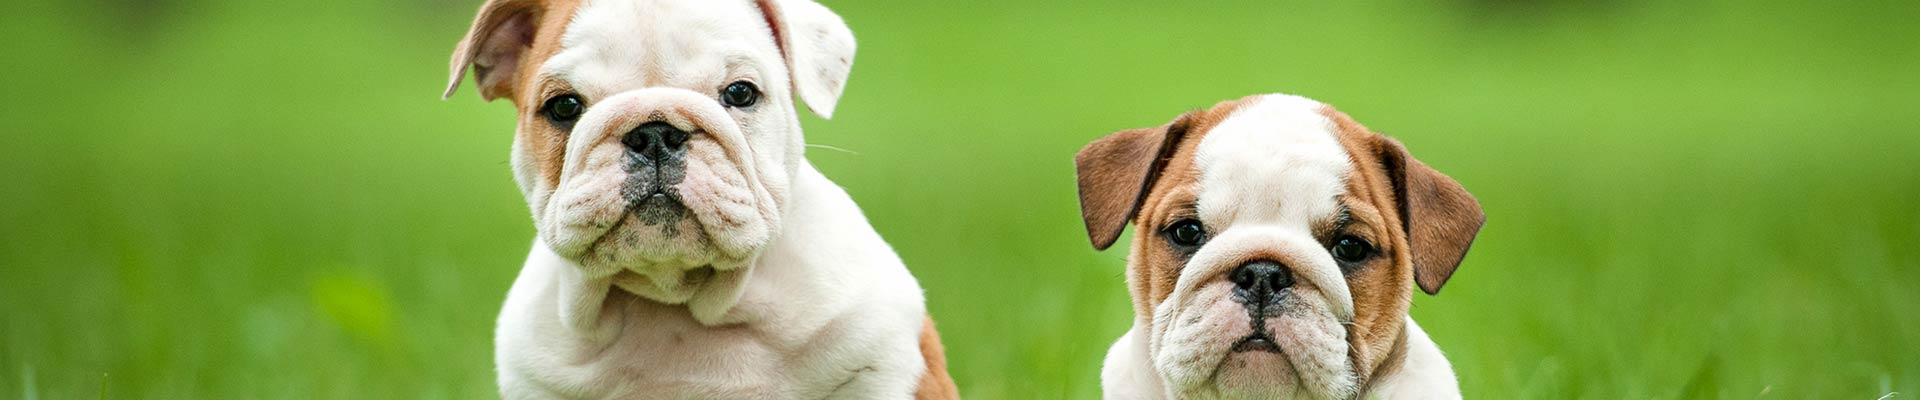 bulldog-puppies-banner